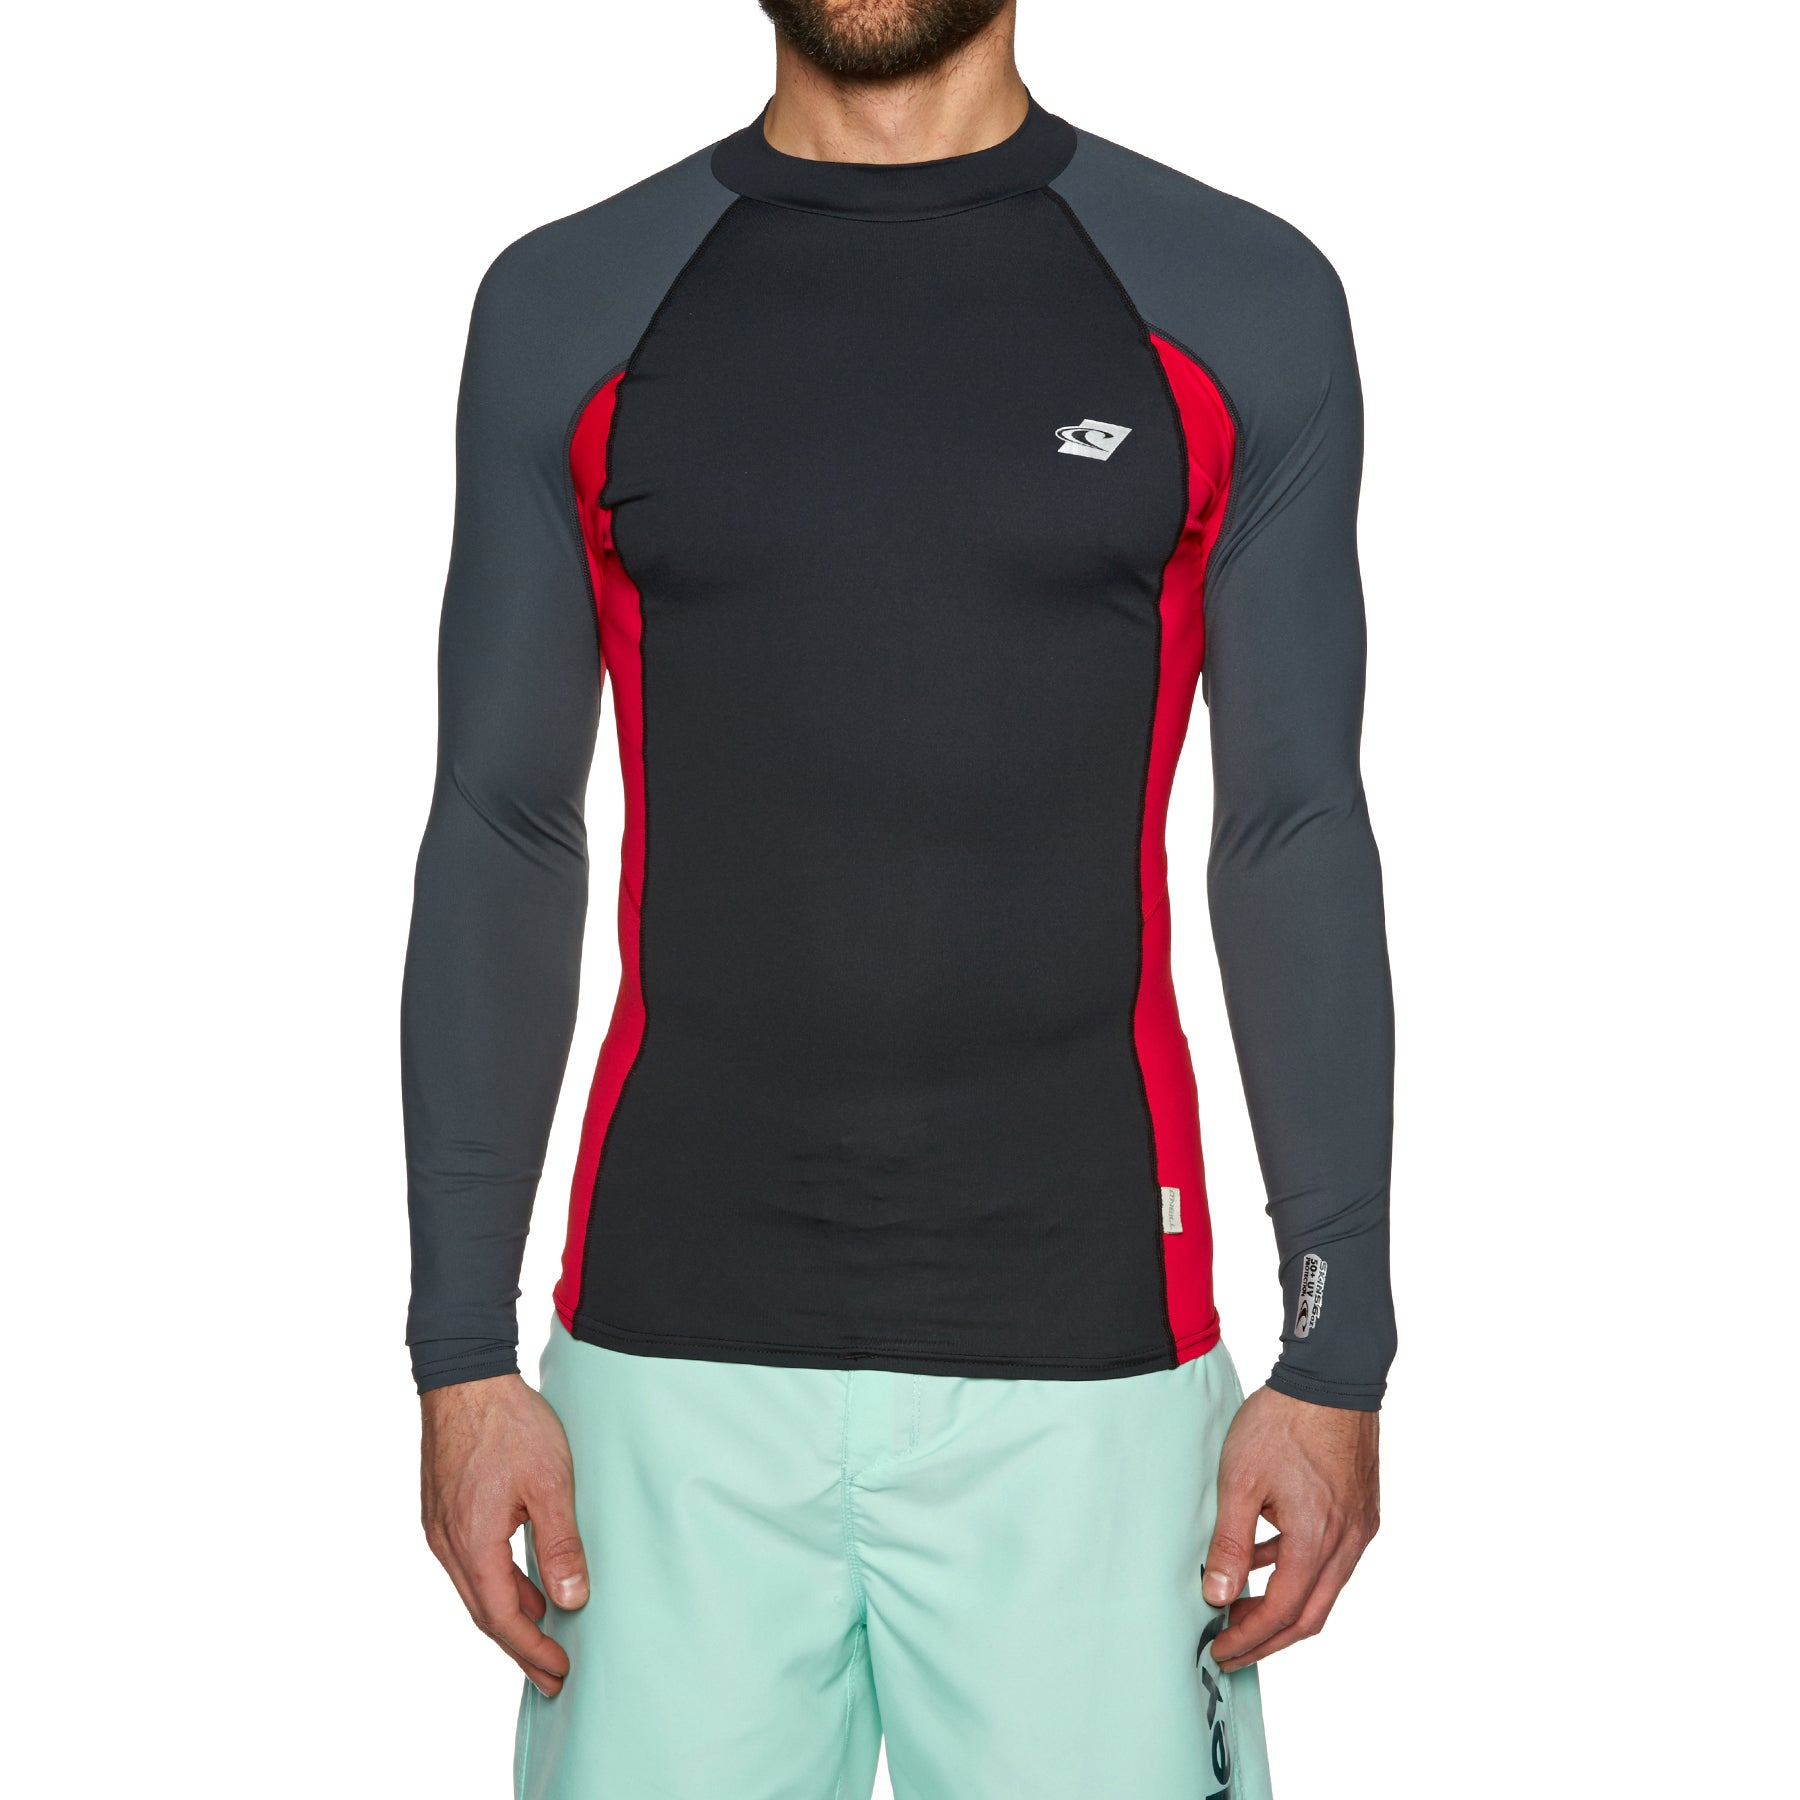 O Neill Premium Skins Long Sleeve Rash Vest - Blk/red/graph